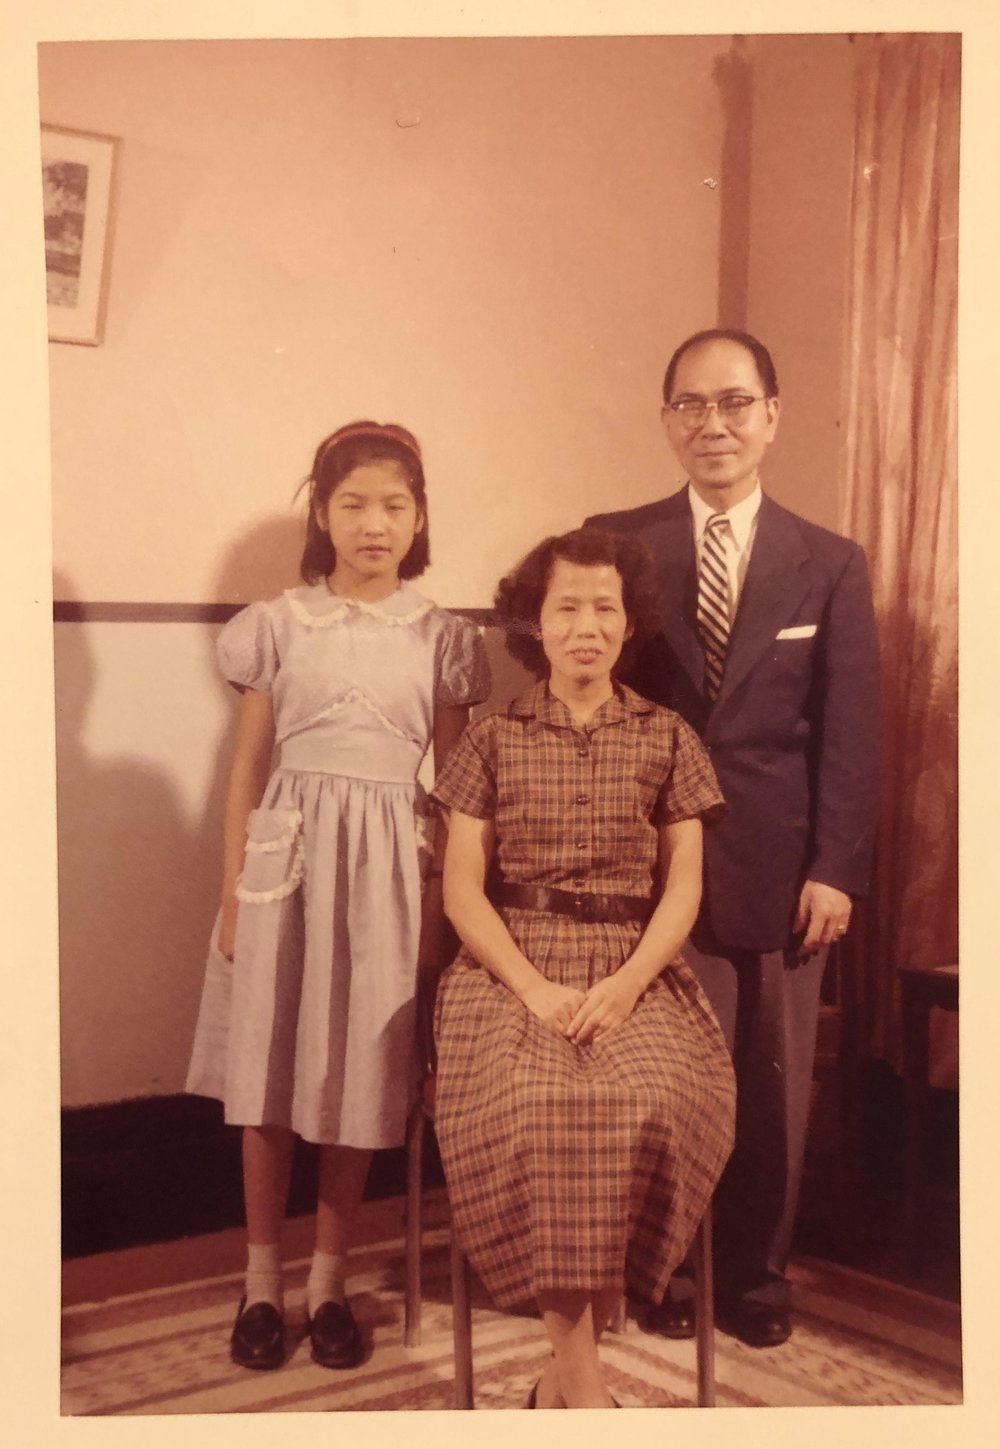 Cynthia Yee, wearing her first store-bought dress, with her parents, May Soon Gee and Walter Yee, 116 Hudson Street, 1959.  (photo taken by Eddie Moon Fun Yee)